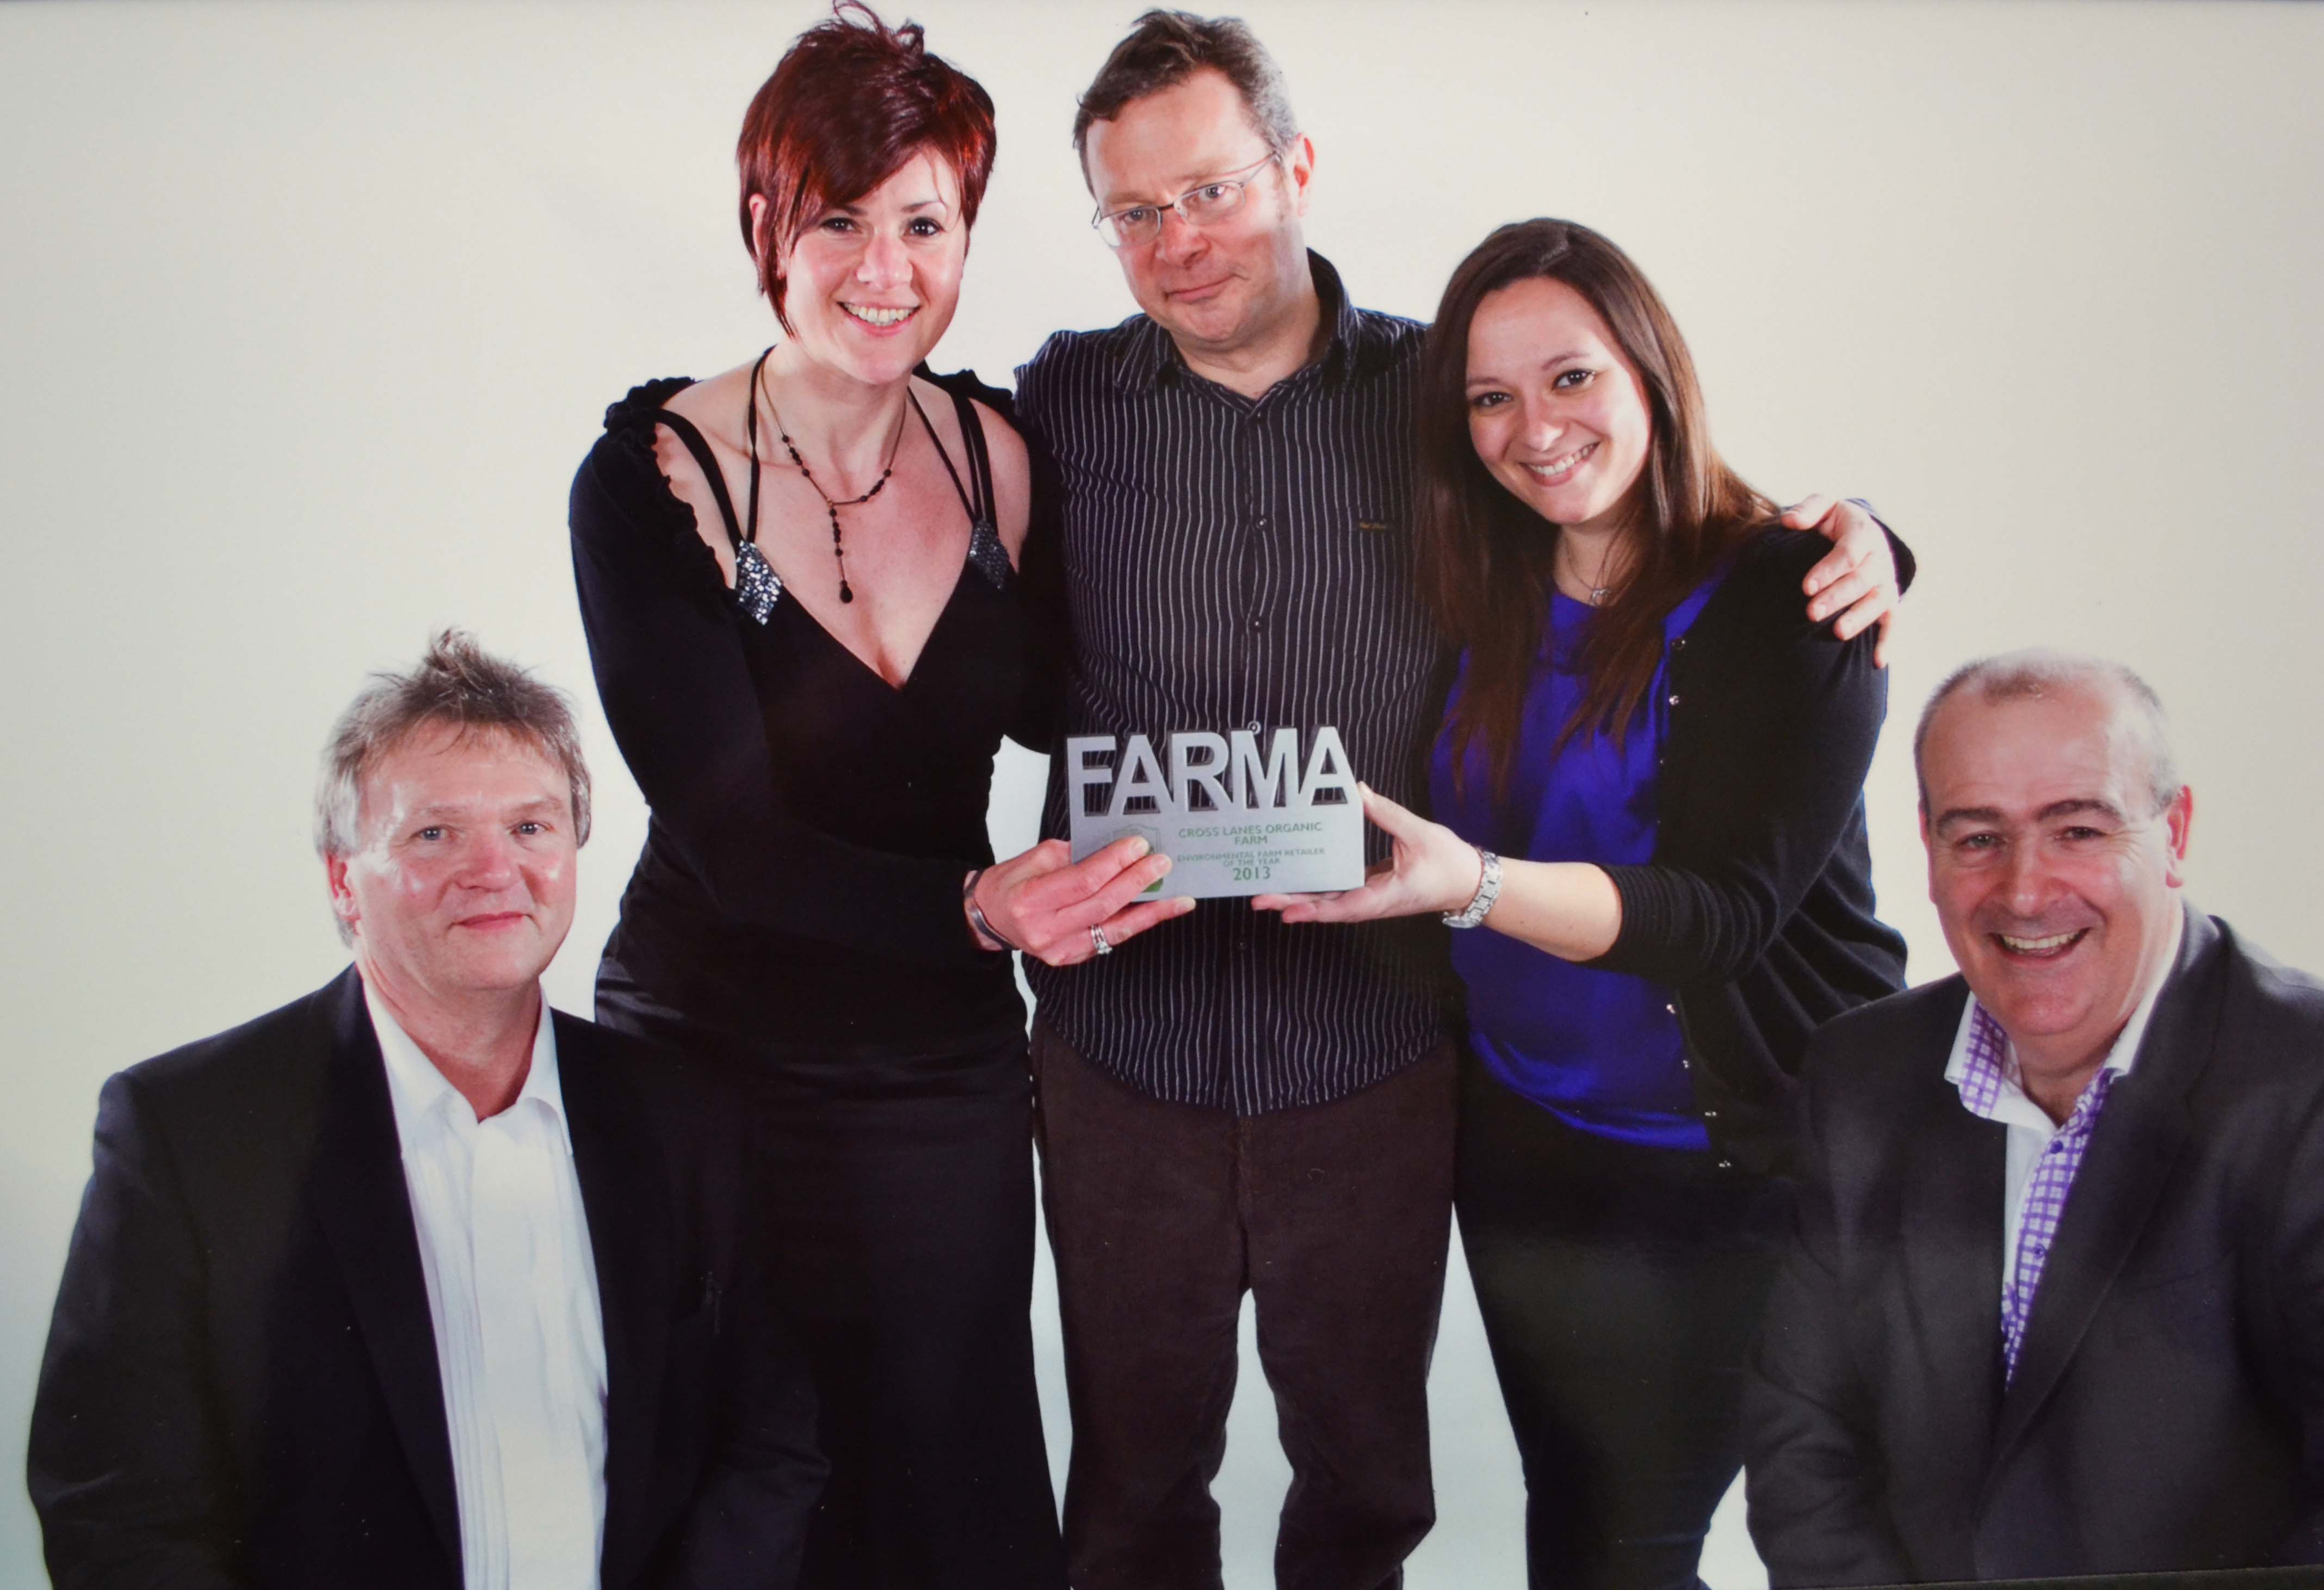 FARMA AWARD: From left, Peter Coverdale and Deborah Hare, from Cross Lanes Organic Farm, received their FARMA award from campaigner Hugh Fearnley-Whittingstall, with Vlora Salihi and Steve Mitchell from sponsors Ecover.